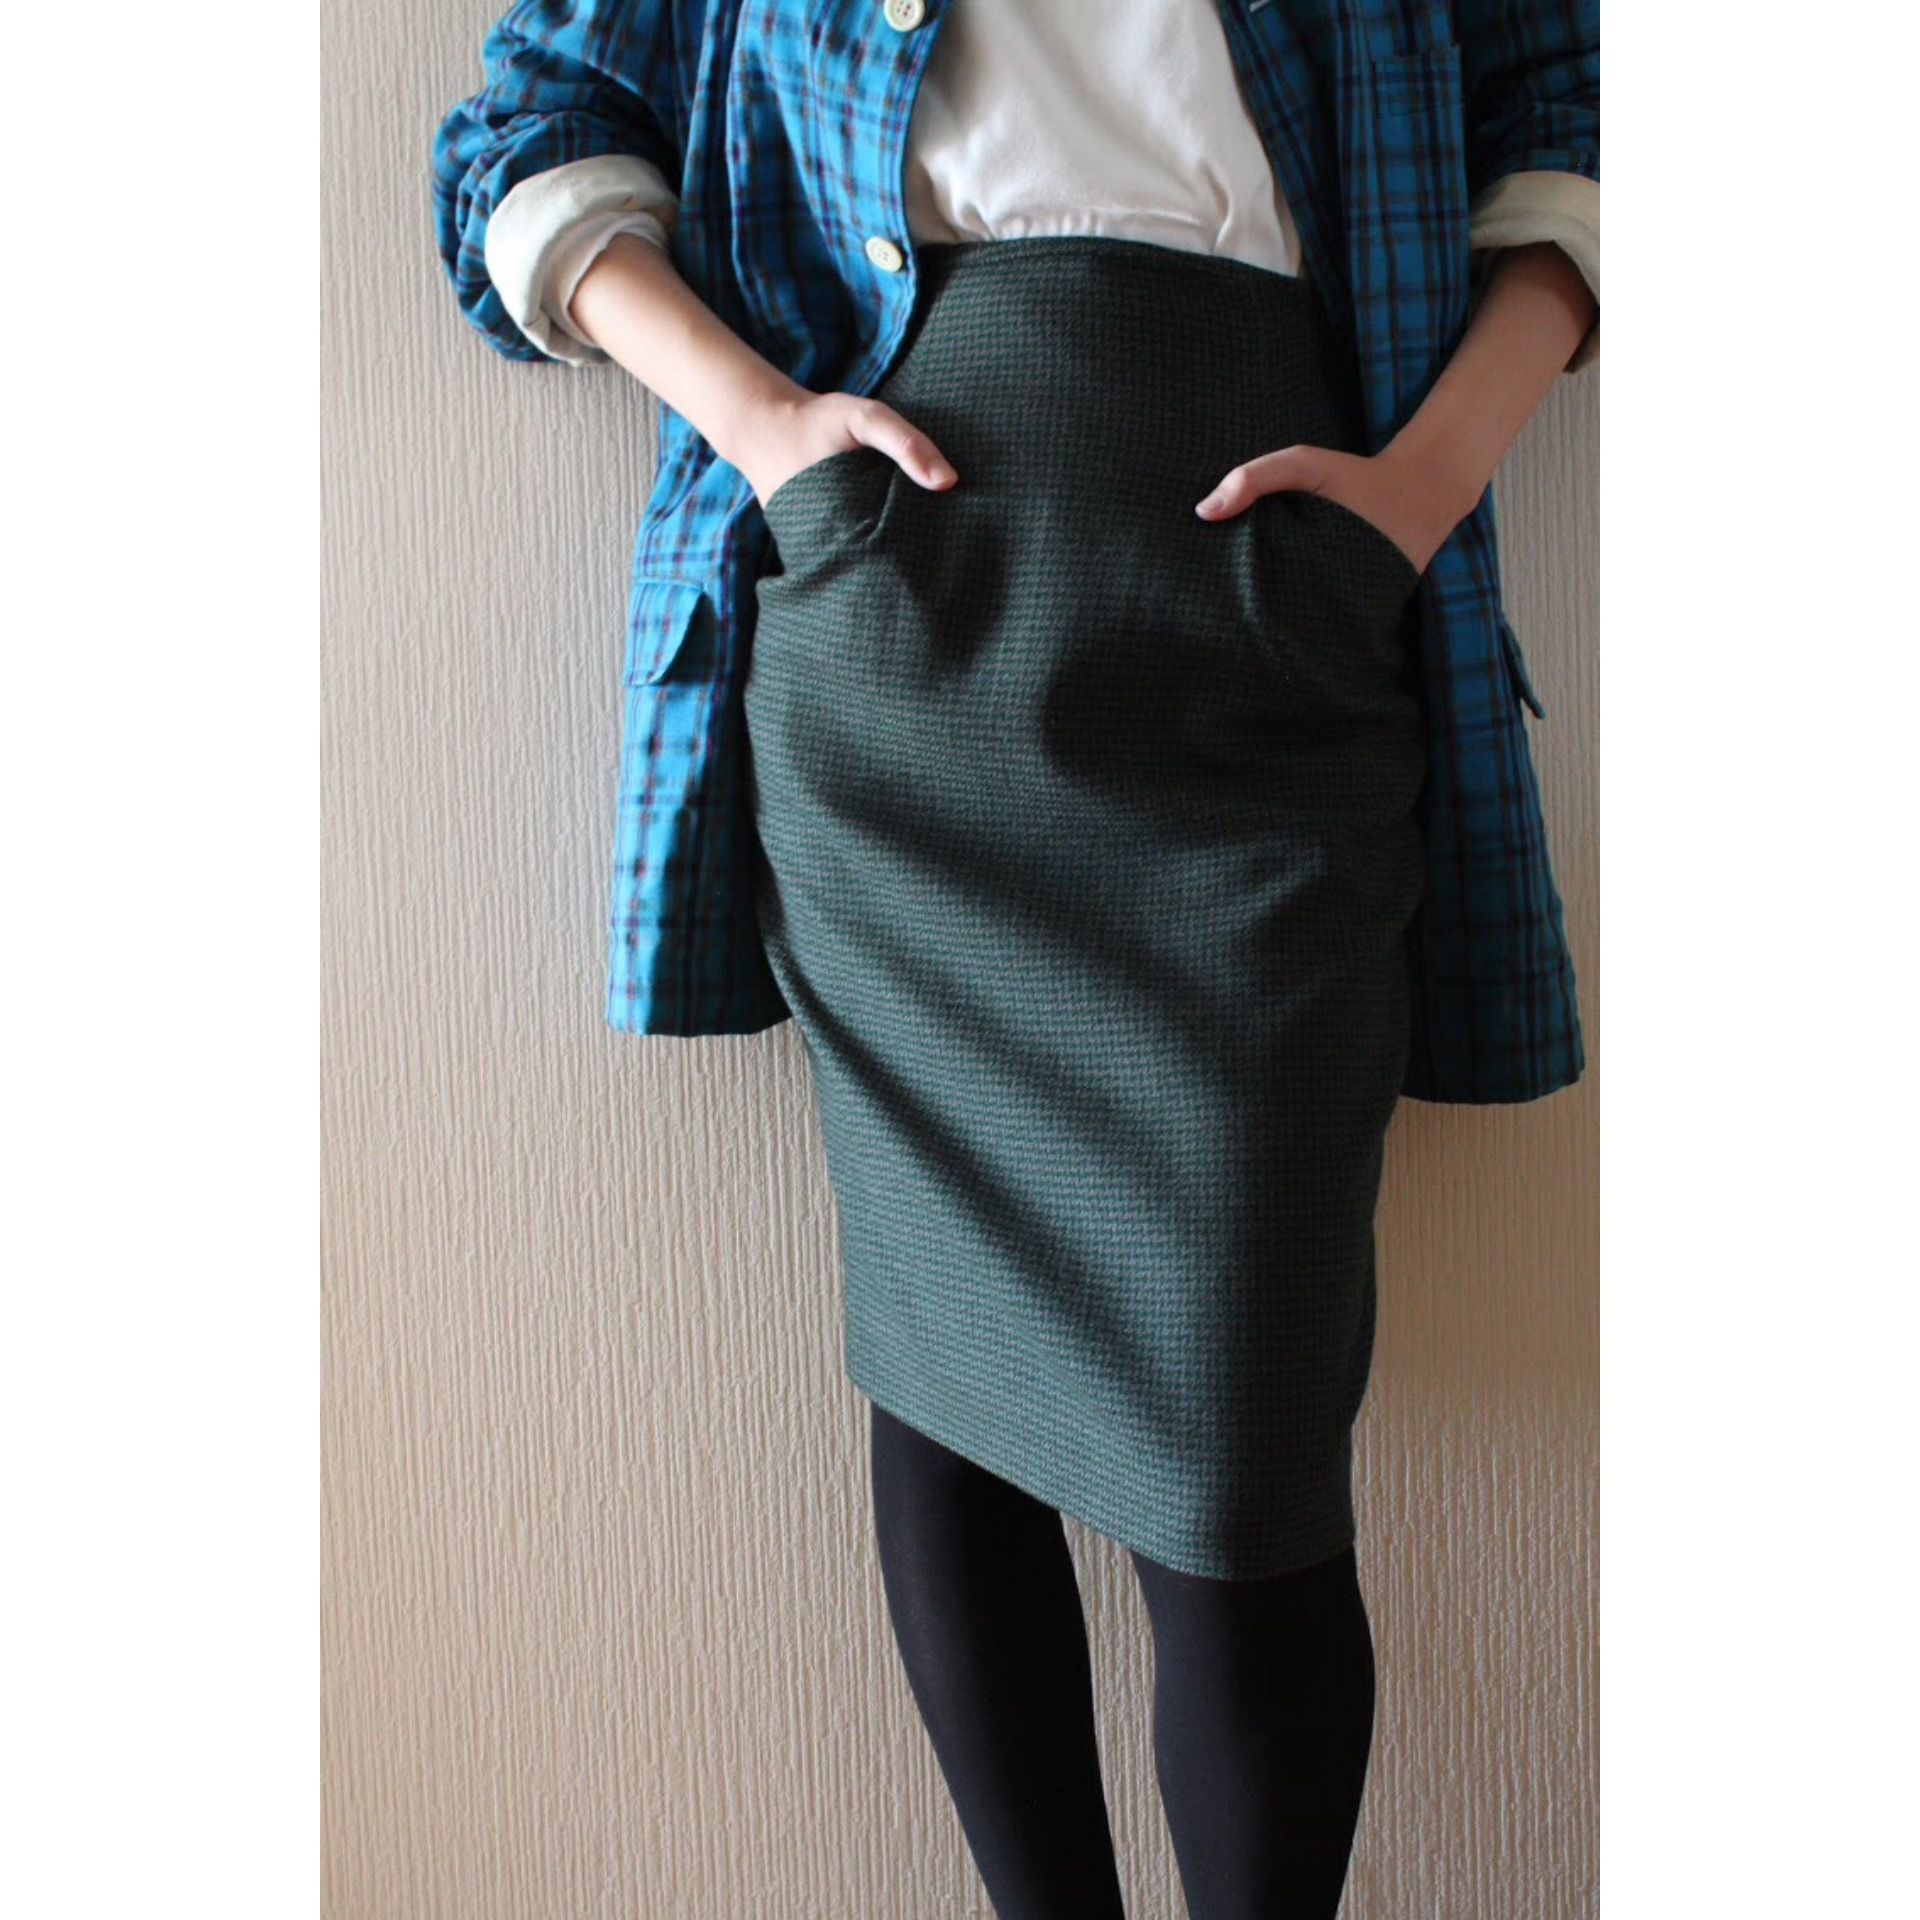 Vintage pencil skirt by Christian Dior